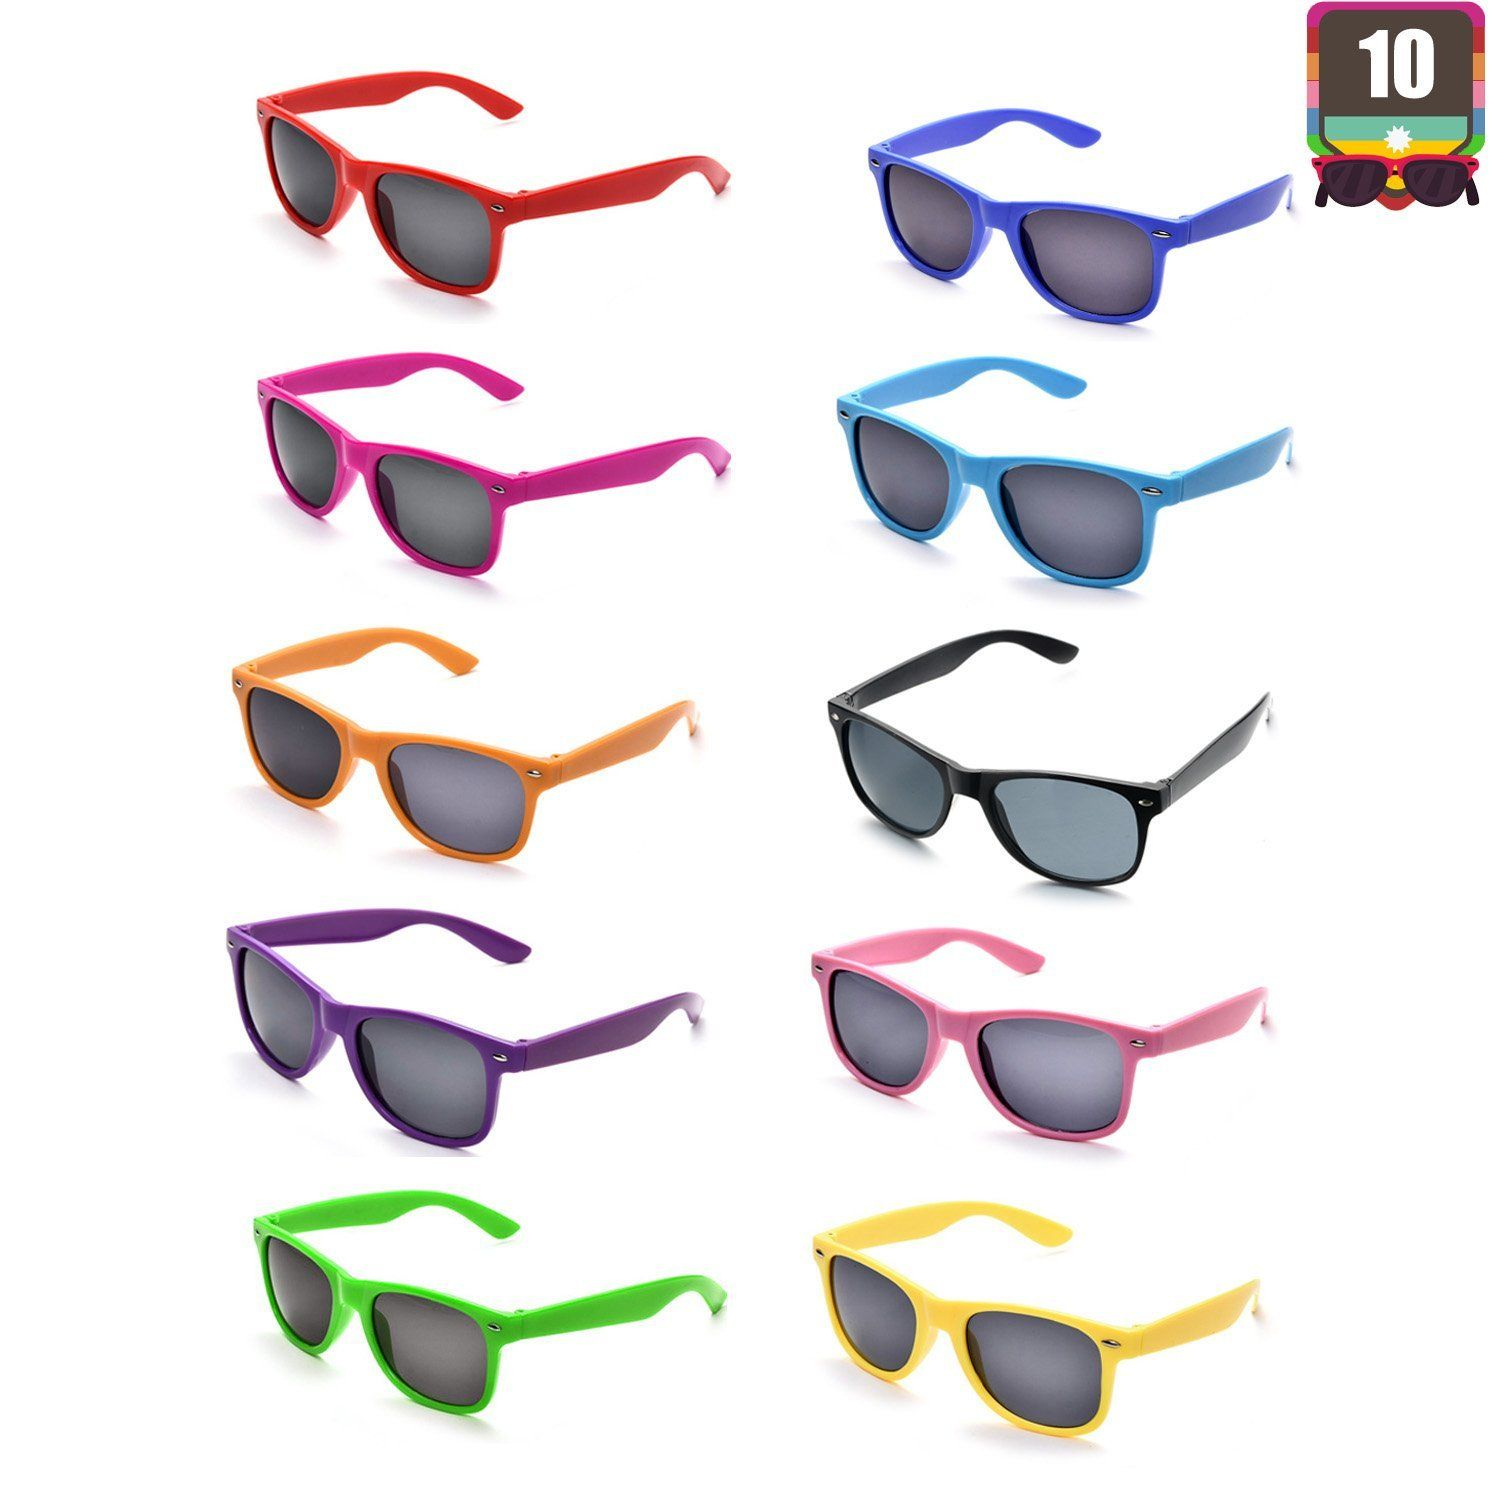 ca23013234 10 Packs Adult and Kids Neon Colors 80s Retro Style Sunglasses ...